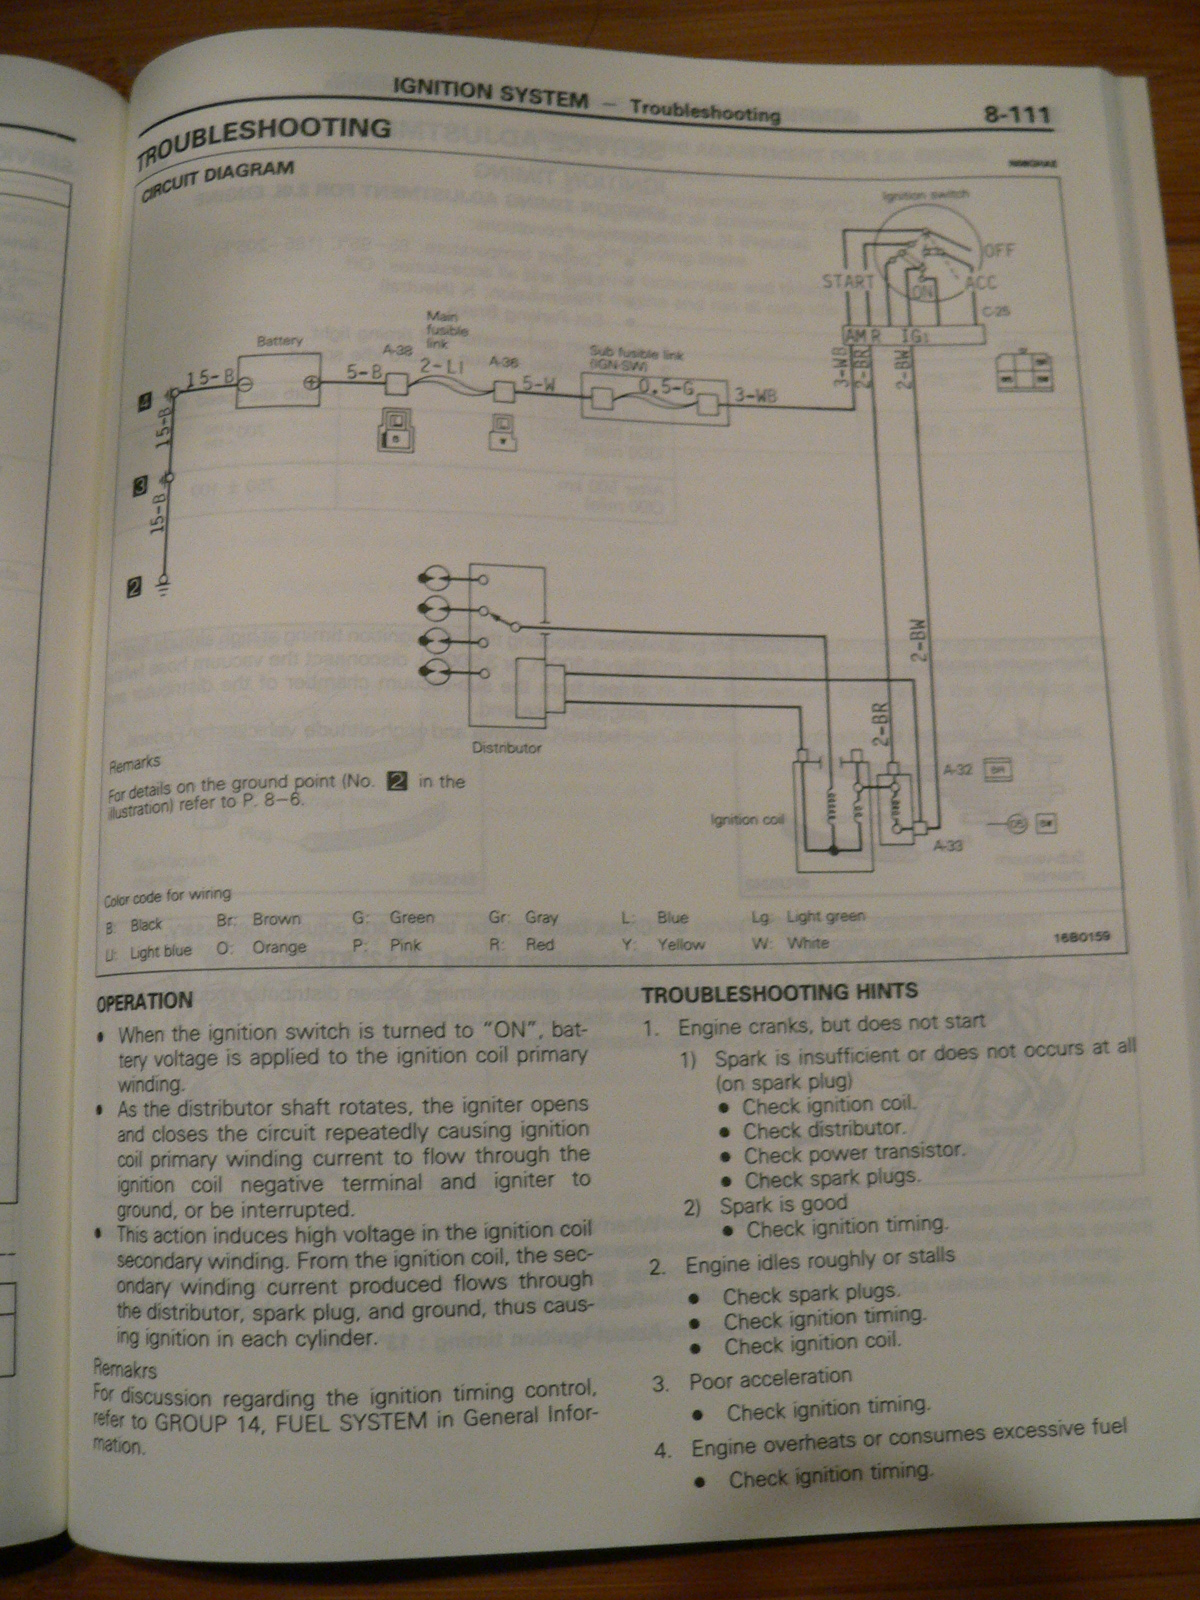 88 Mitsubishi Starion Ecu Pinout Wire Diagram Wiring Library. 88' D50 Coil Wiring Just Plain Ol' Bs Starquestclub Posted 88 Mitsubishi Starion Ecu Pinout Wire Diagram. Wiring. Conquest Tsi Engine Setup Diagram At Scoala.co